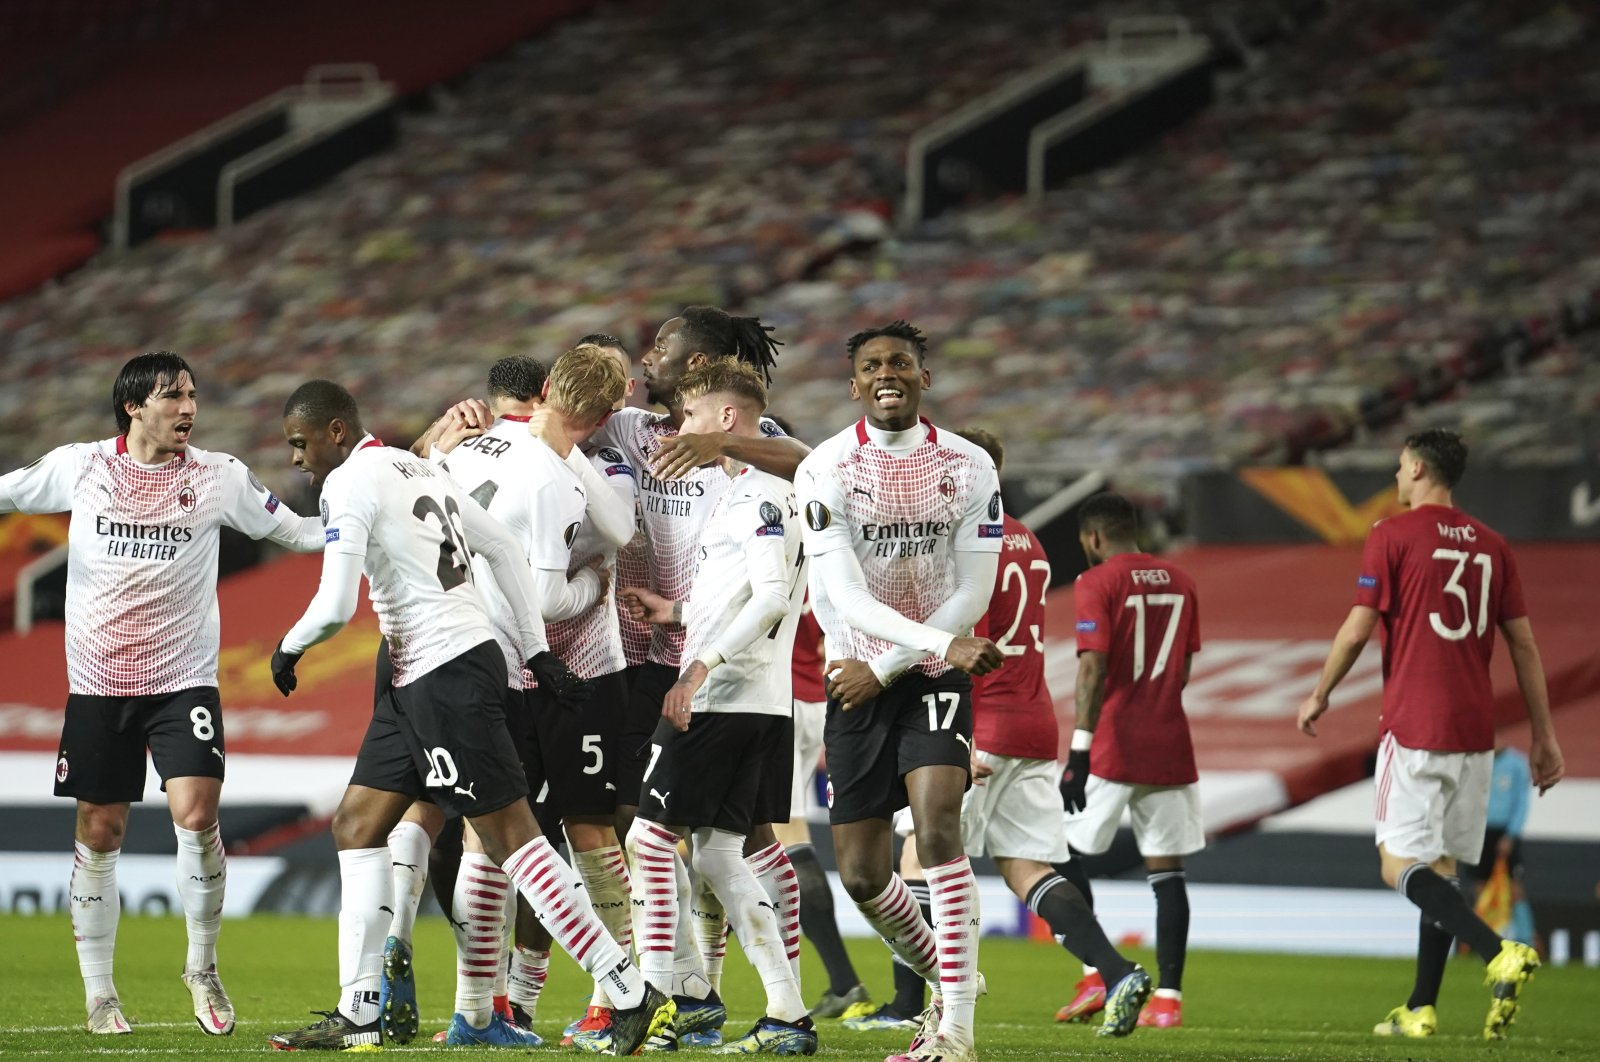 AC Milan players celebrate after Simon Kjaer scored Milan side's opening goal during the Europa League round of 16 first leg football match between Manchester United and AC Milan at Old Trafford in Manchester, England, March 11, 2021. (AP Photo)